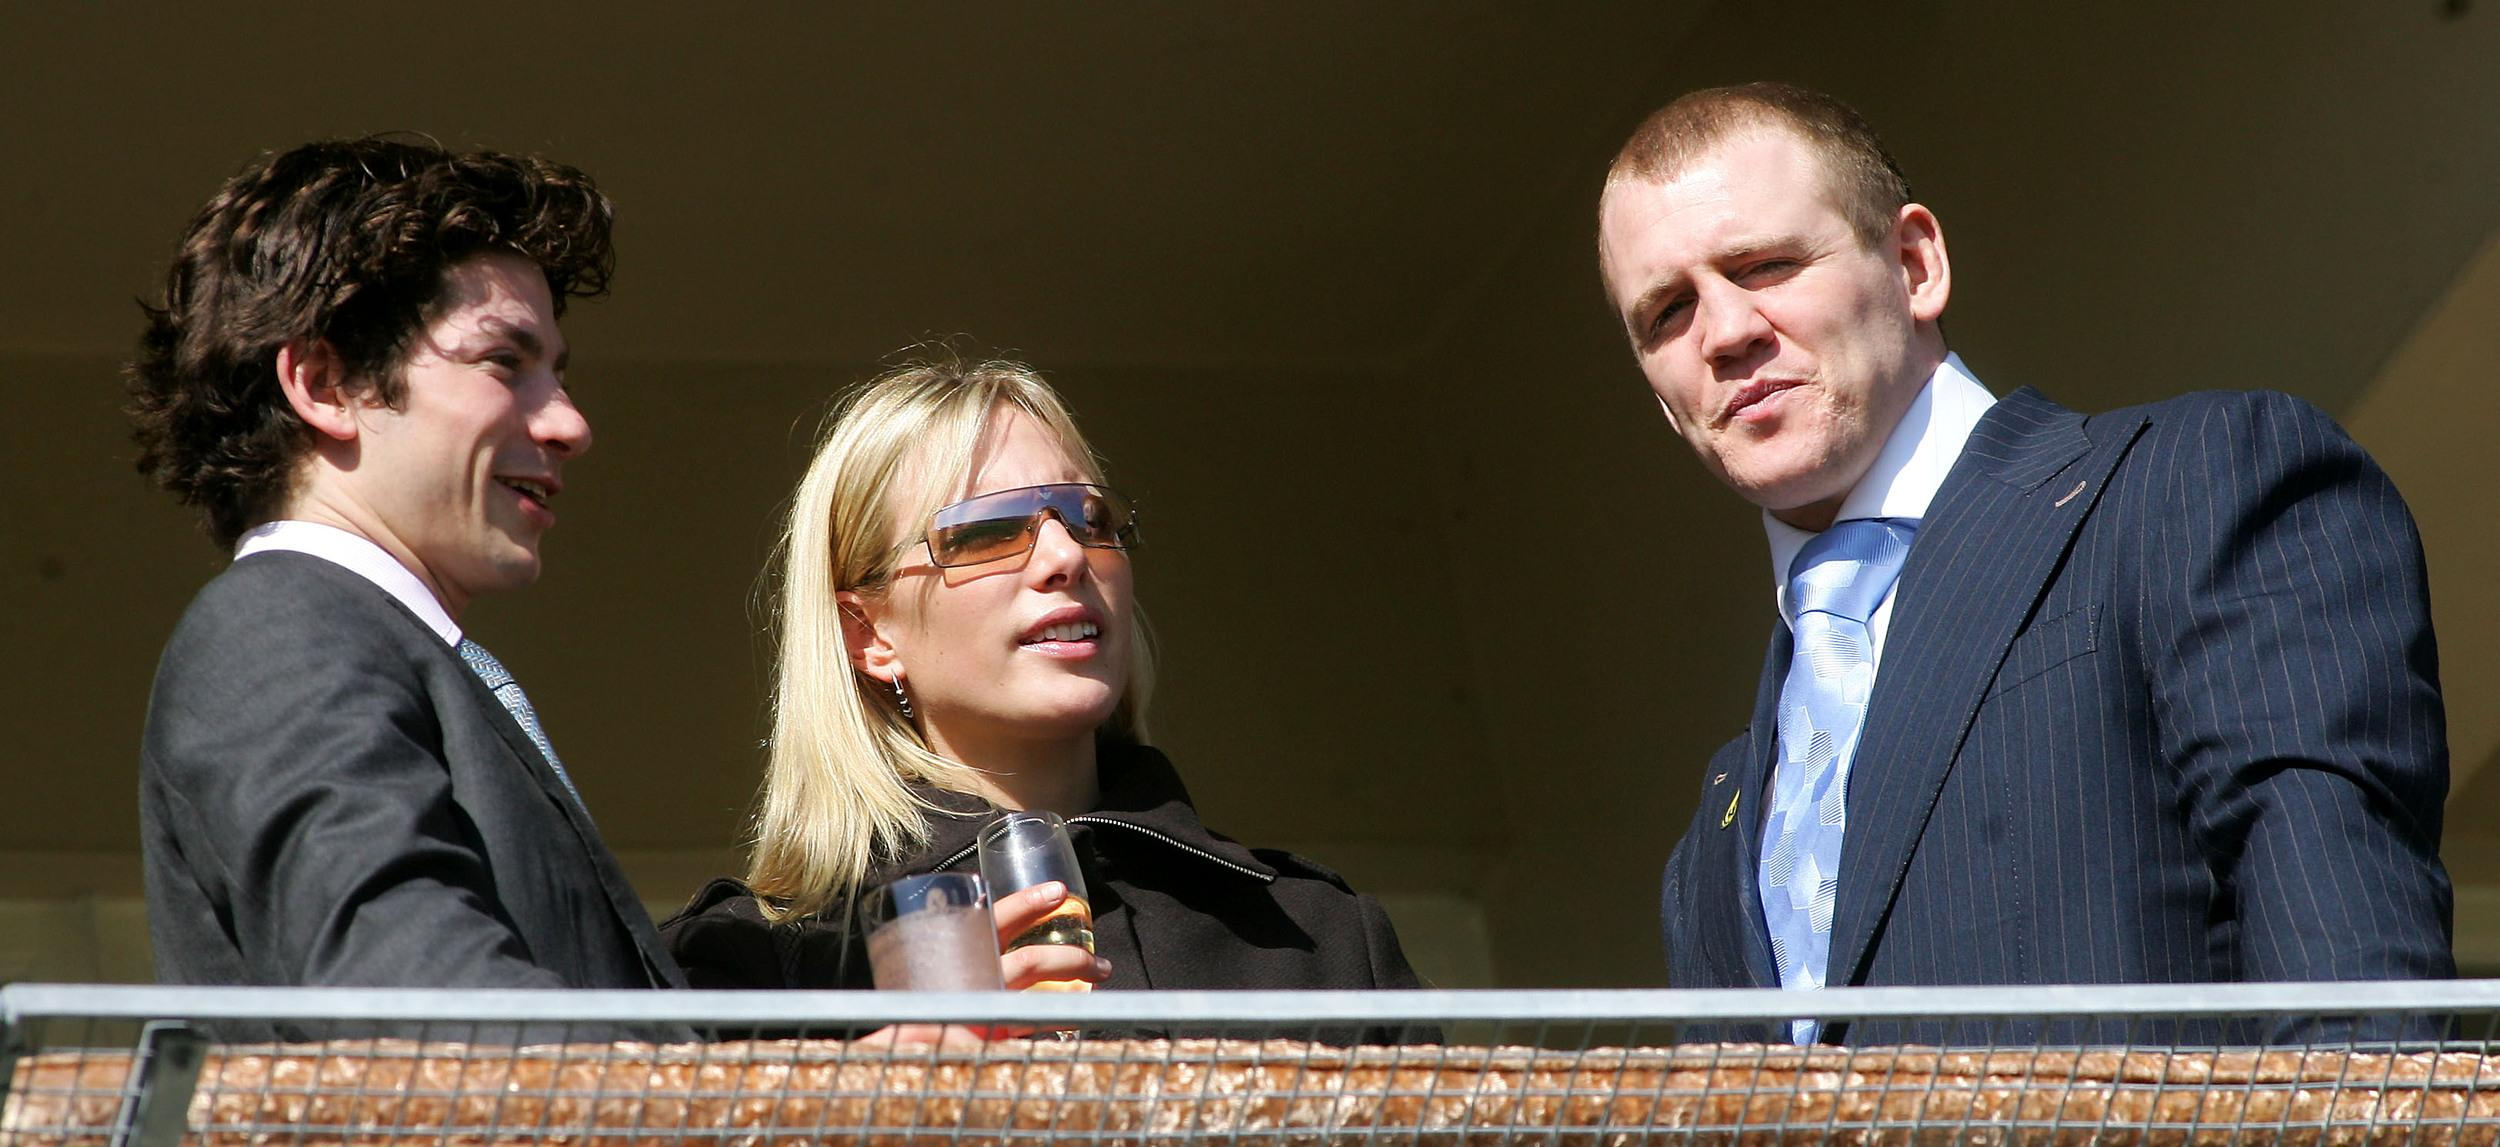 Britain's Phillips talks with England rugby player Tindall on the final day of the Cheltenham National Hunt Festival.  Britain's Zara Phillips (C), granddaughter of Queen Elizabeth, has a drink with boyfriend England rugby player Mike Tindall (R) and an unidentifed man on the final day of the Cheltenham National Hunt Festival meeting in Gloucestershire, central England, March 18, 2005. REUTERS/Mike Finn-Kelcey